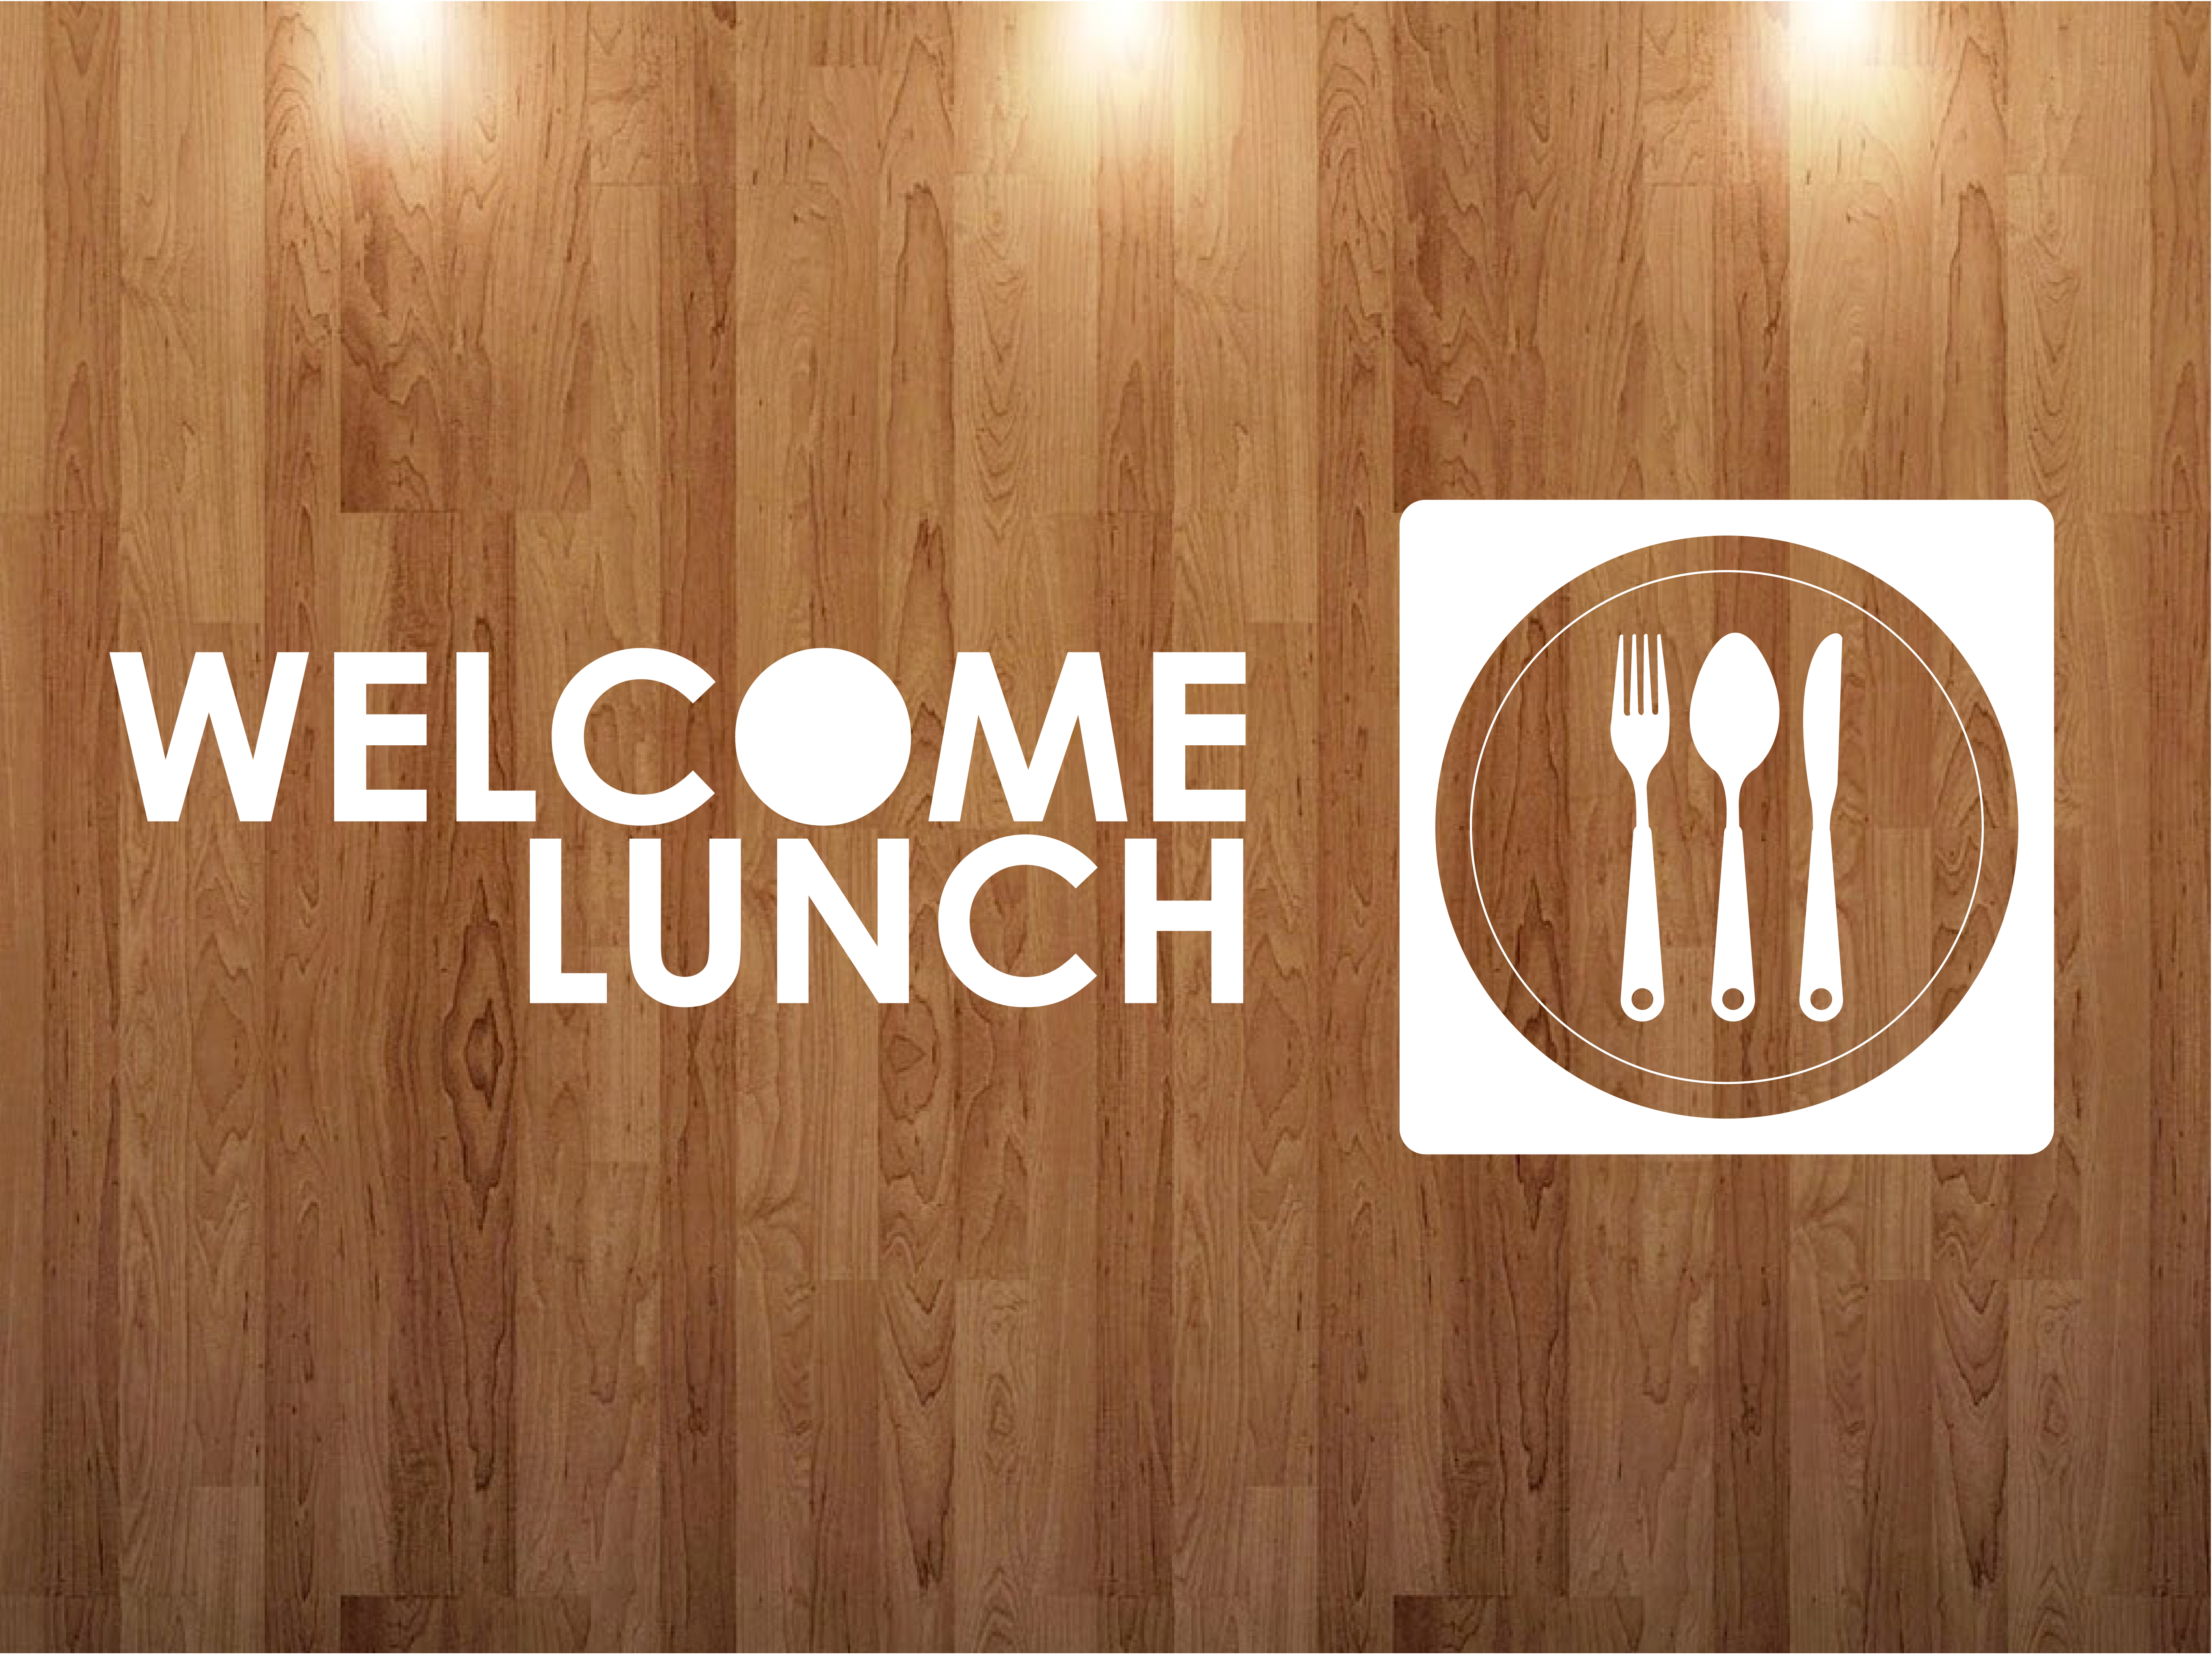 Welcome lunch 2017 graphic 01